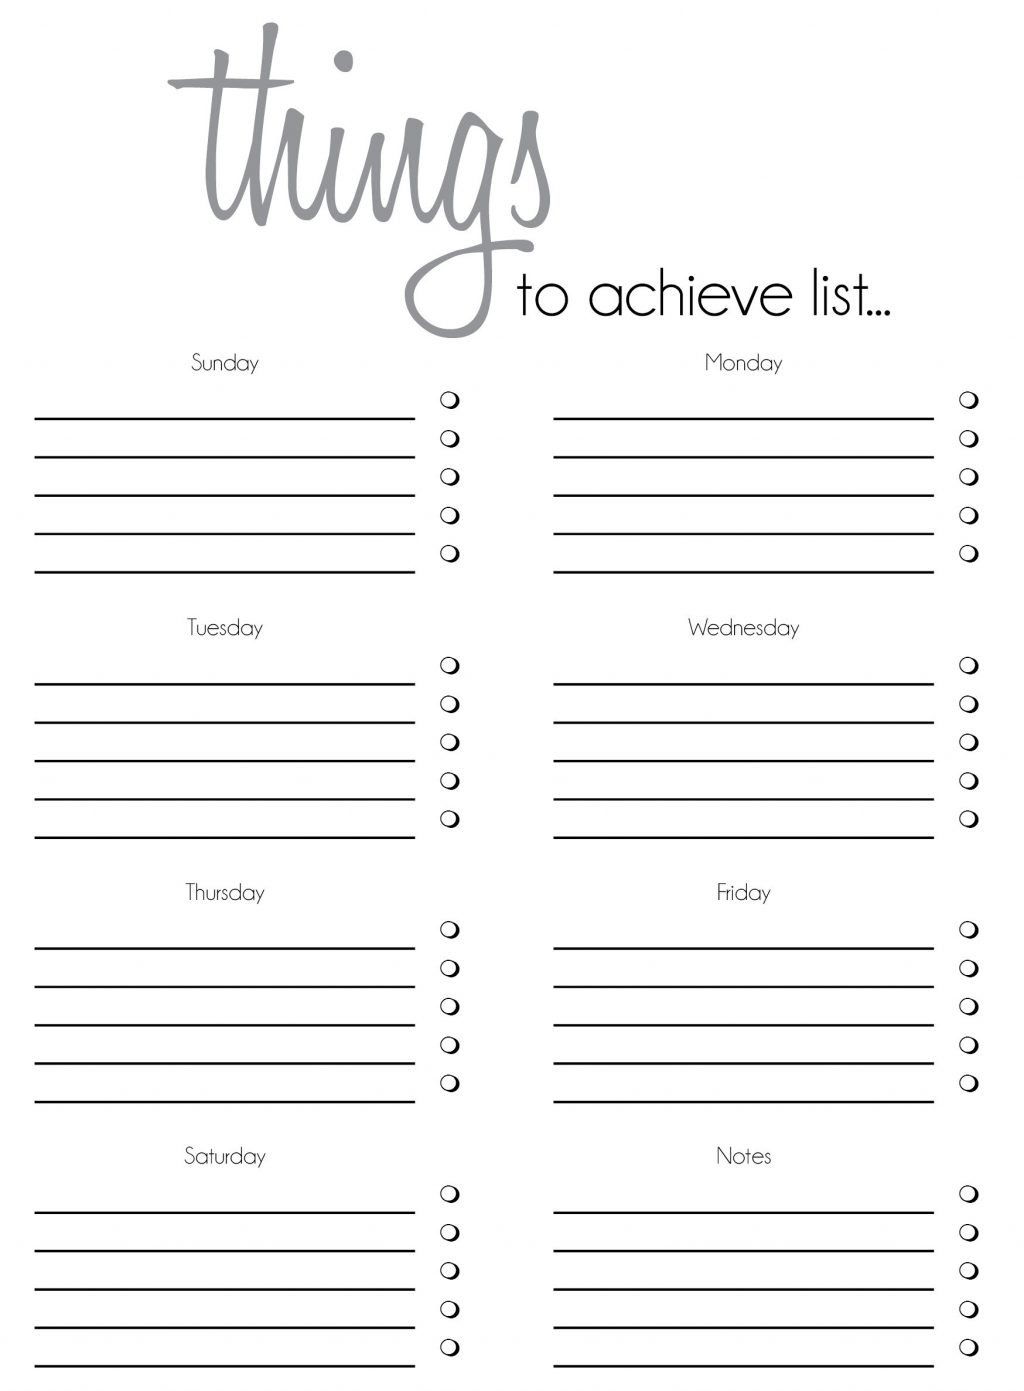 Free Printable To Do List Templates Latest Calendar Caregiver Daily with Free Printable Daily To Do Checklist Monday Through Friday